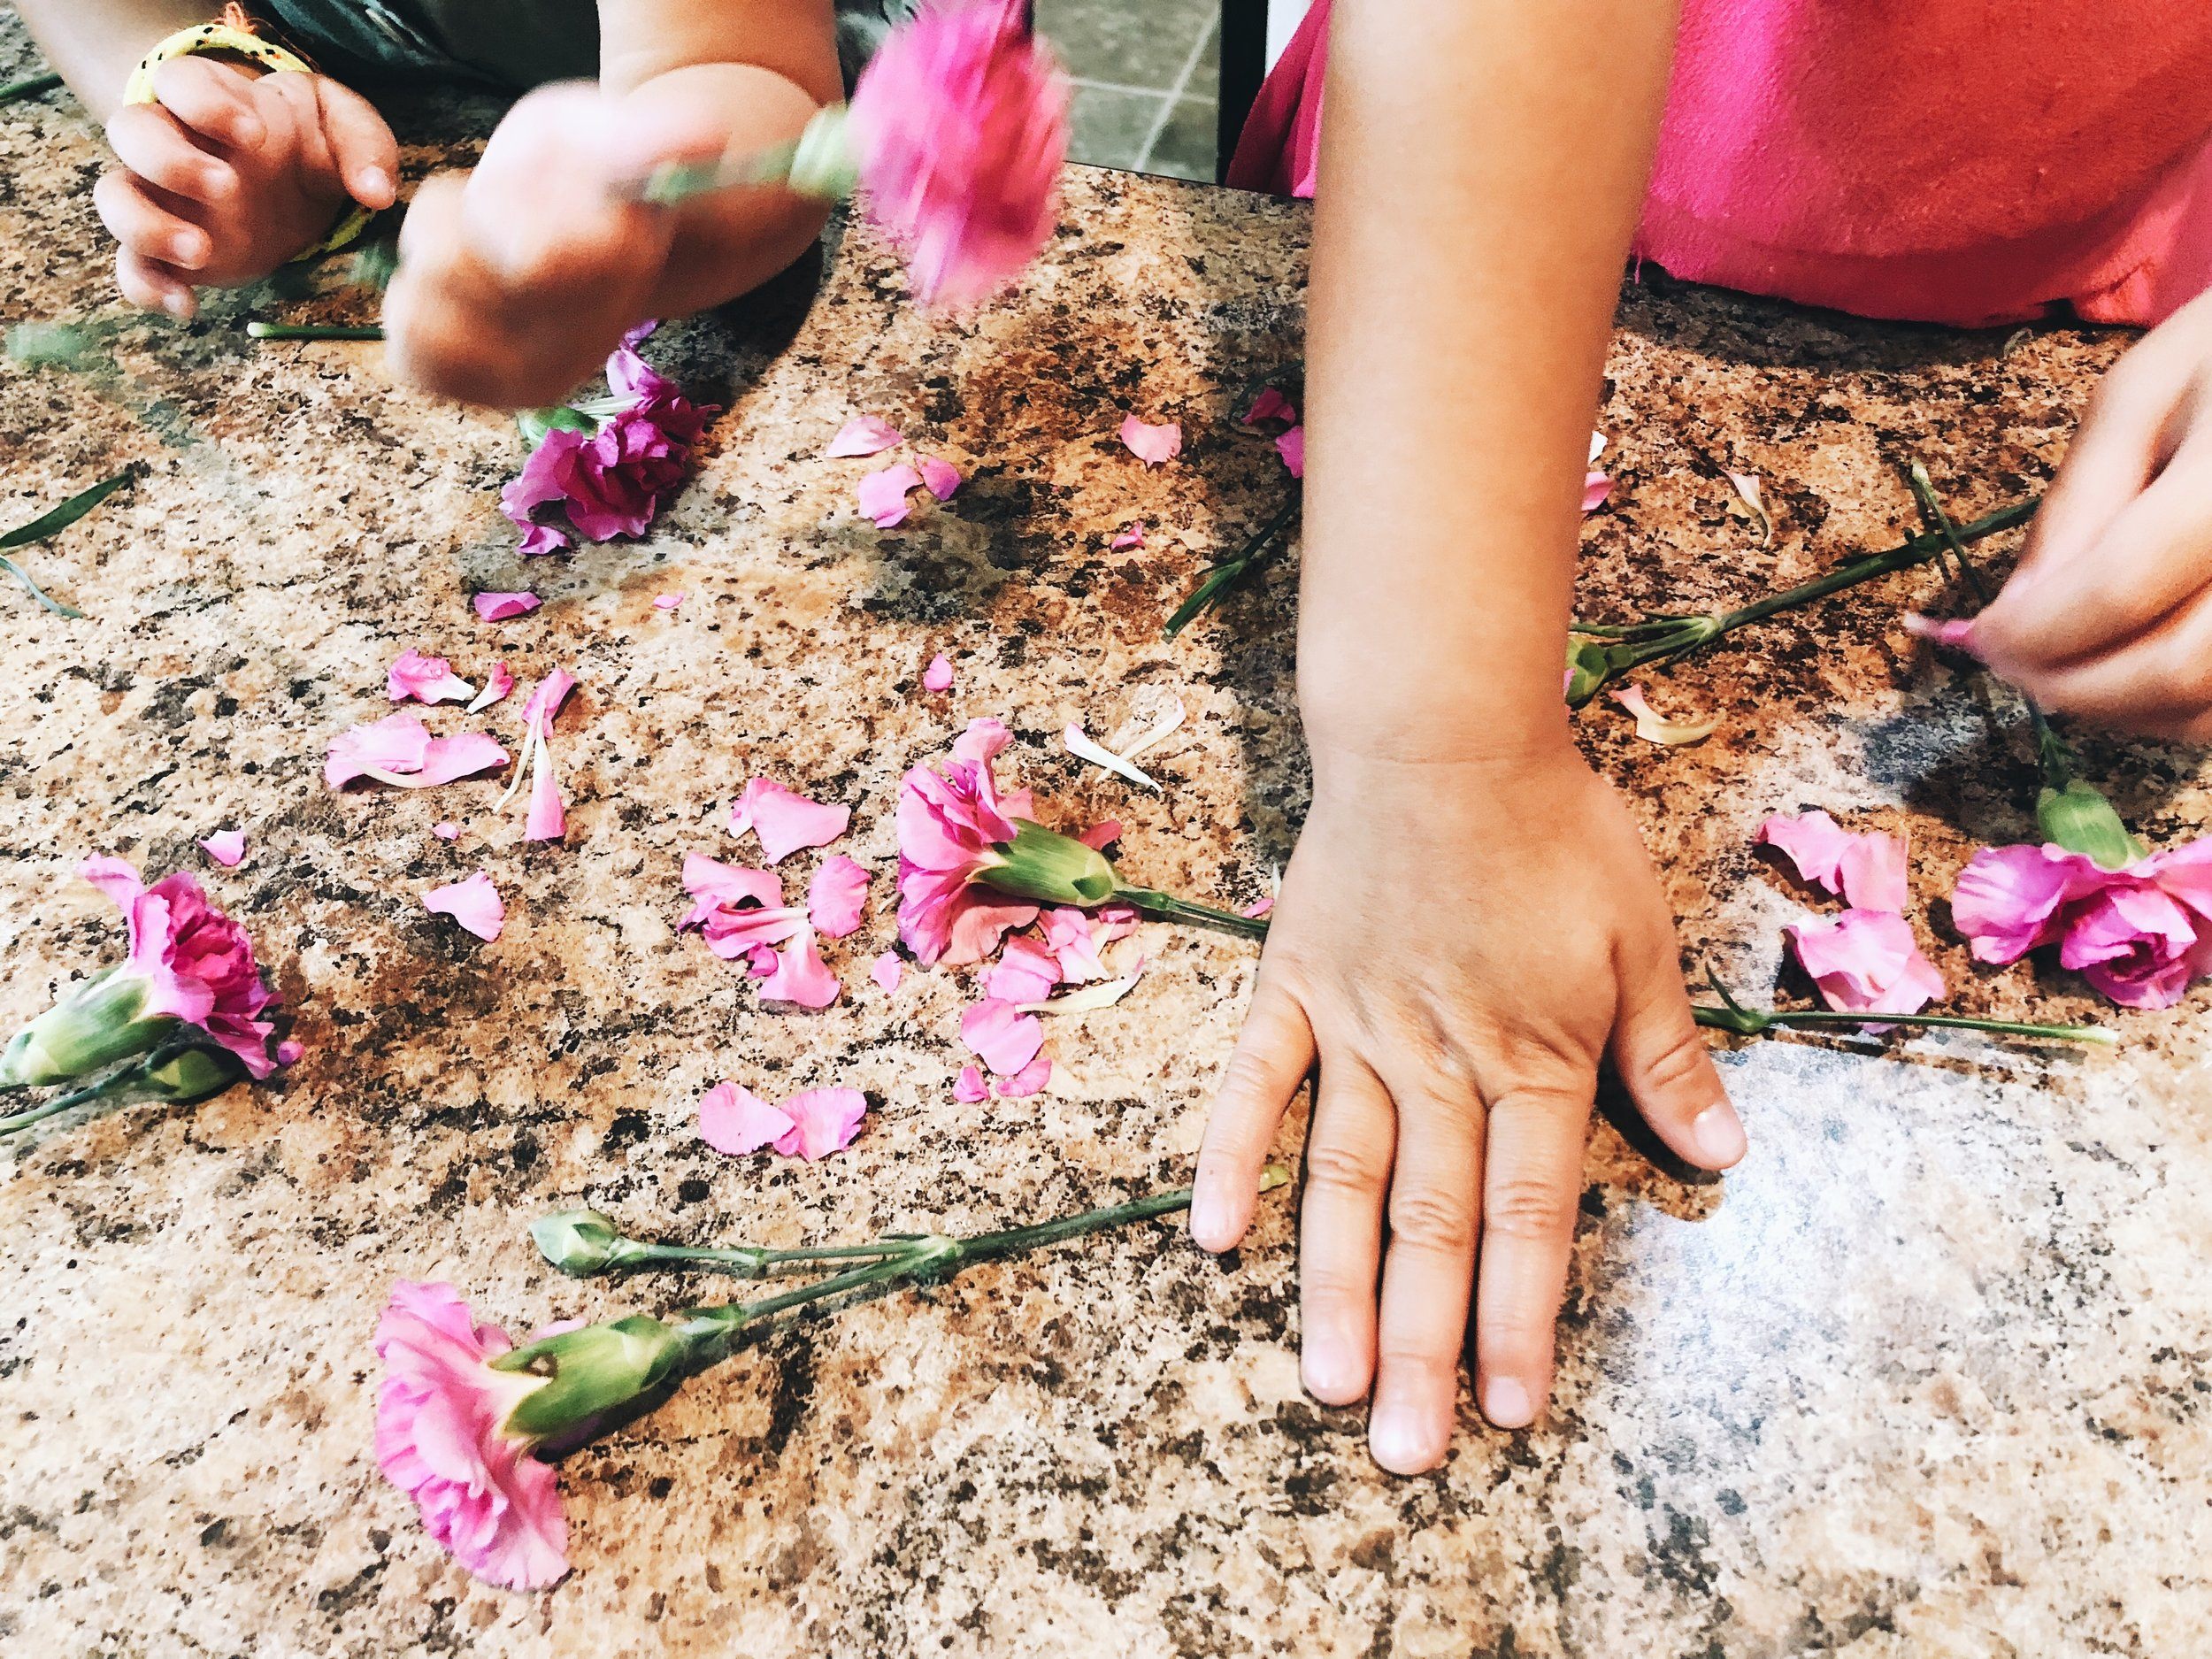 They had to use fine motor skills to rip, pull and tear the leaves and flower petals